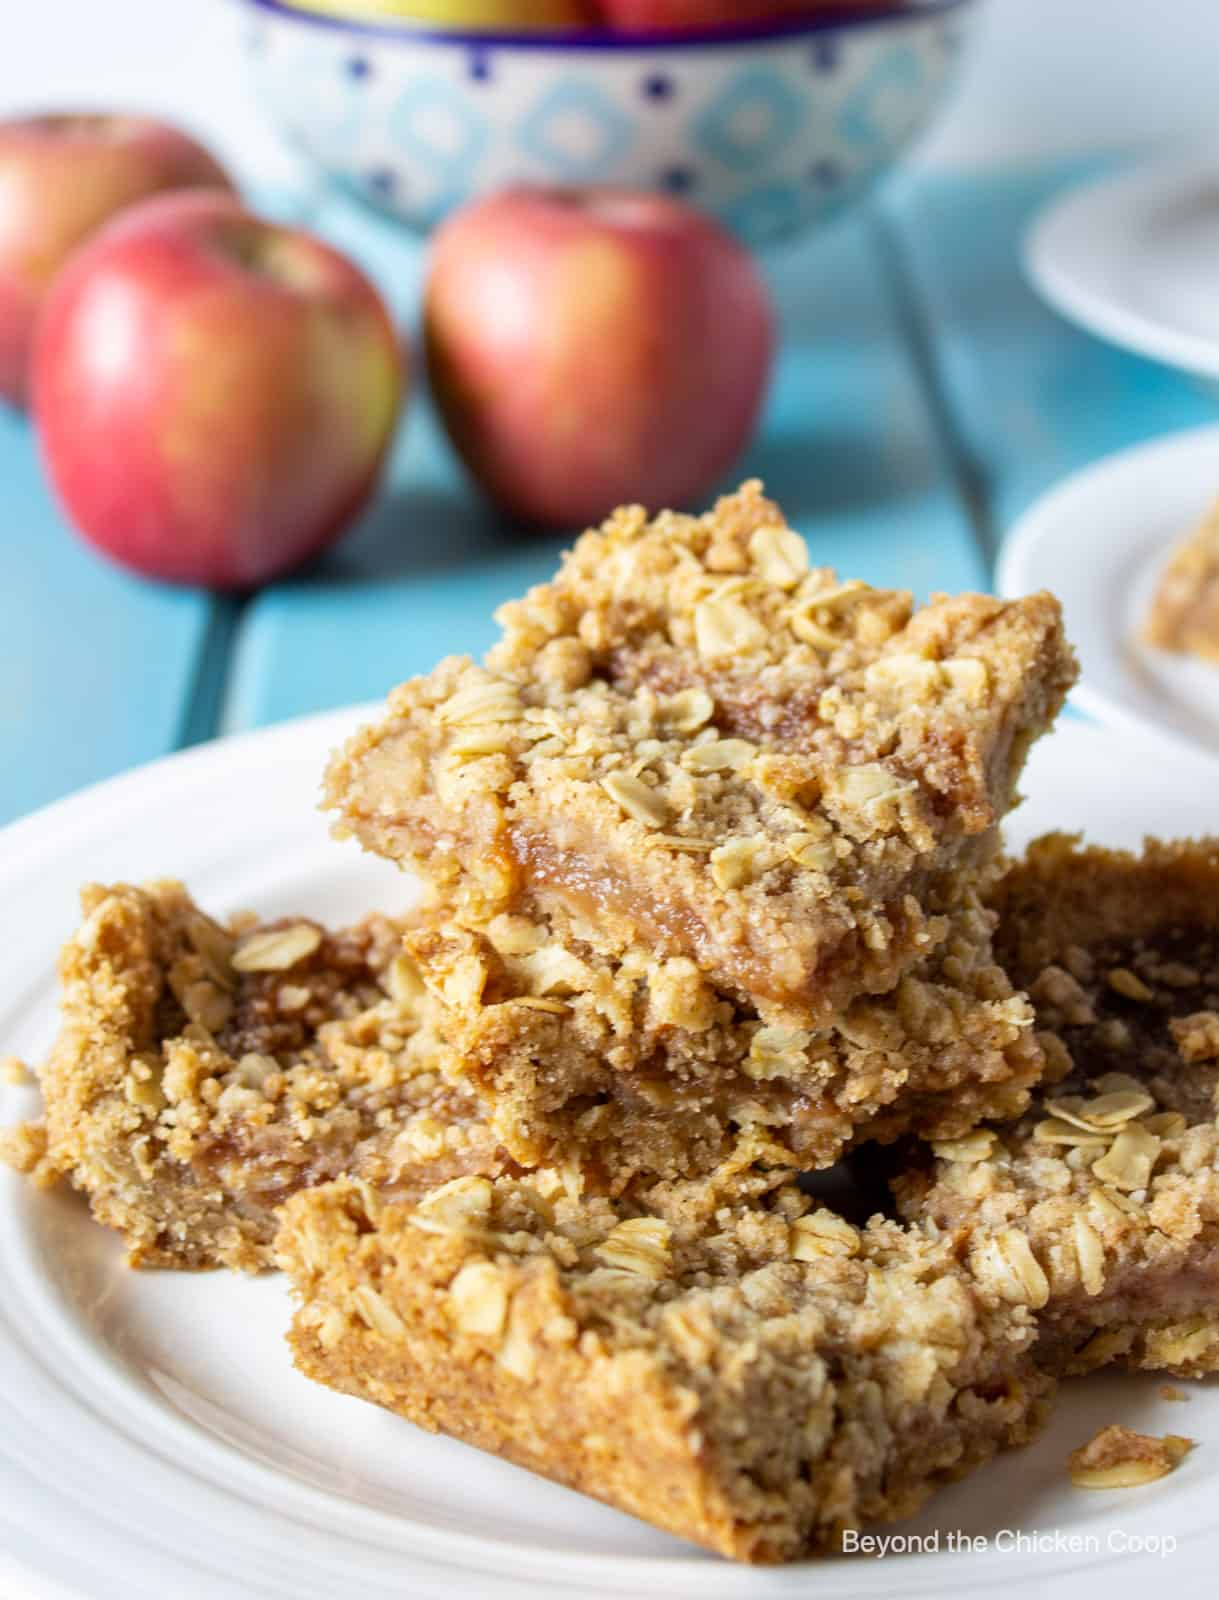 Oat bars stacked on a white plate.